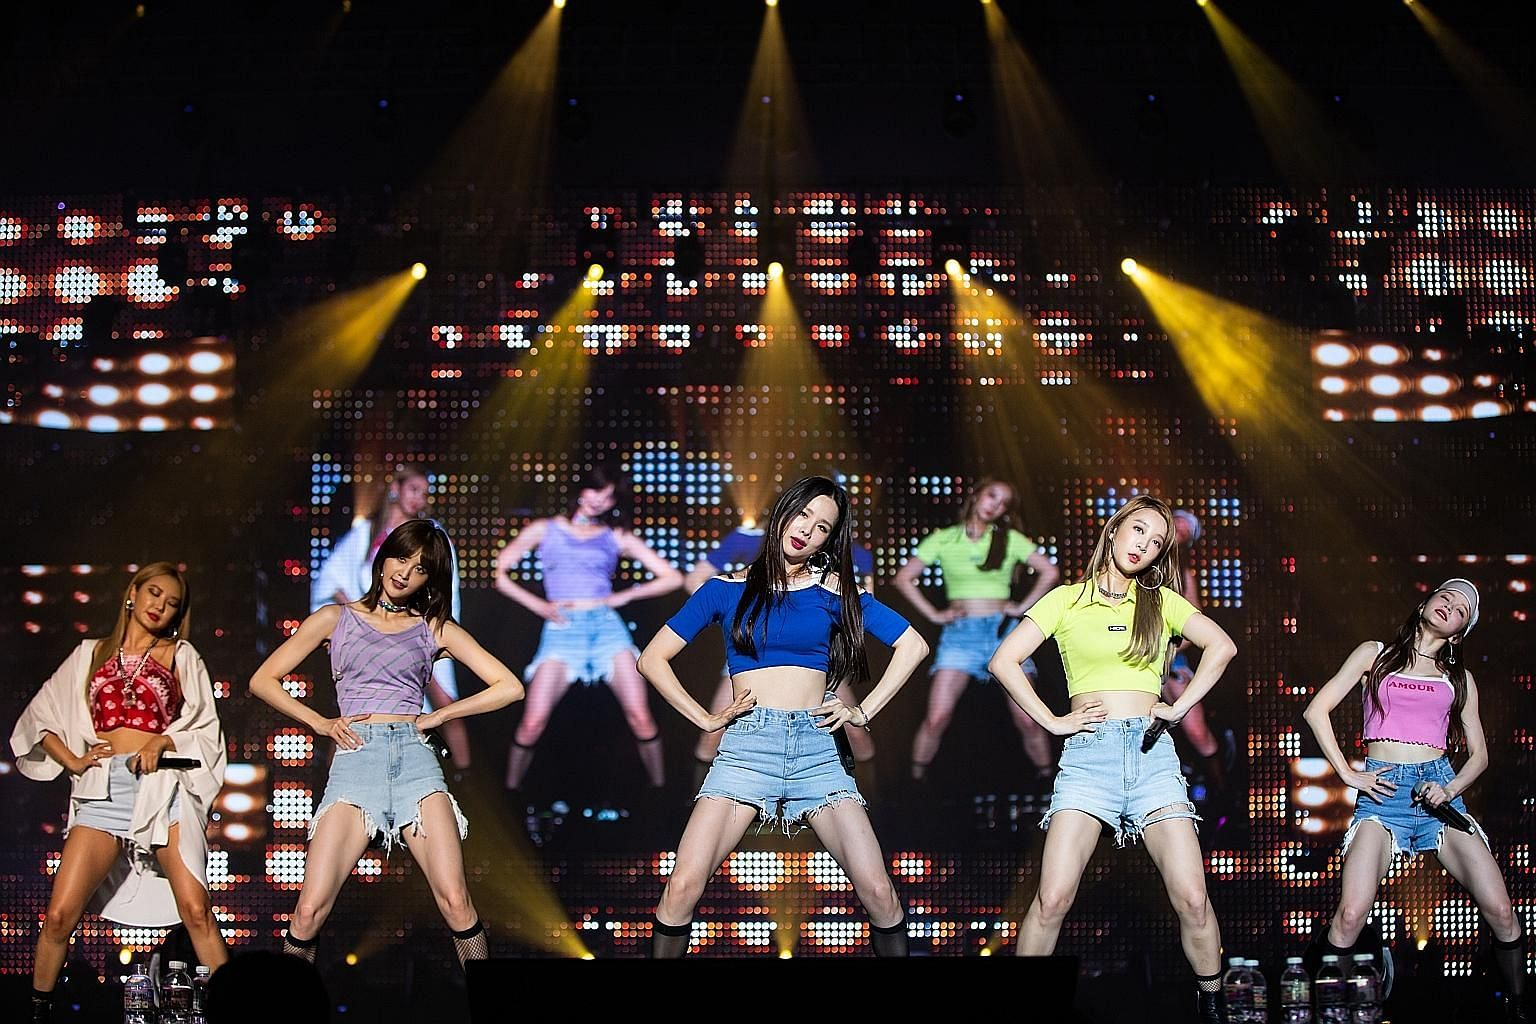 Exid's performance did not have a single boring moment.